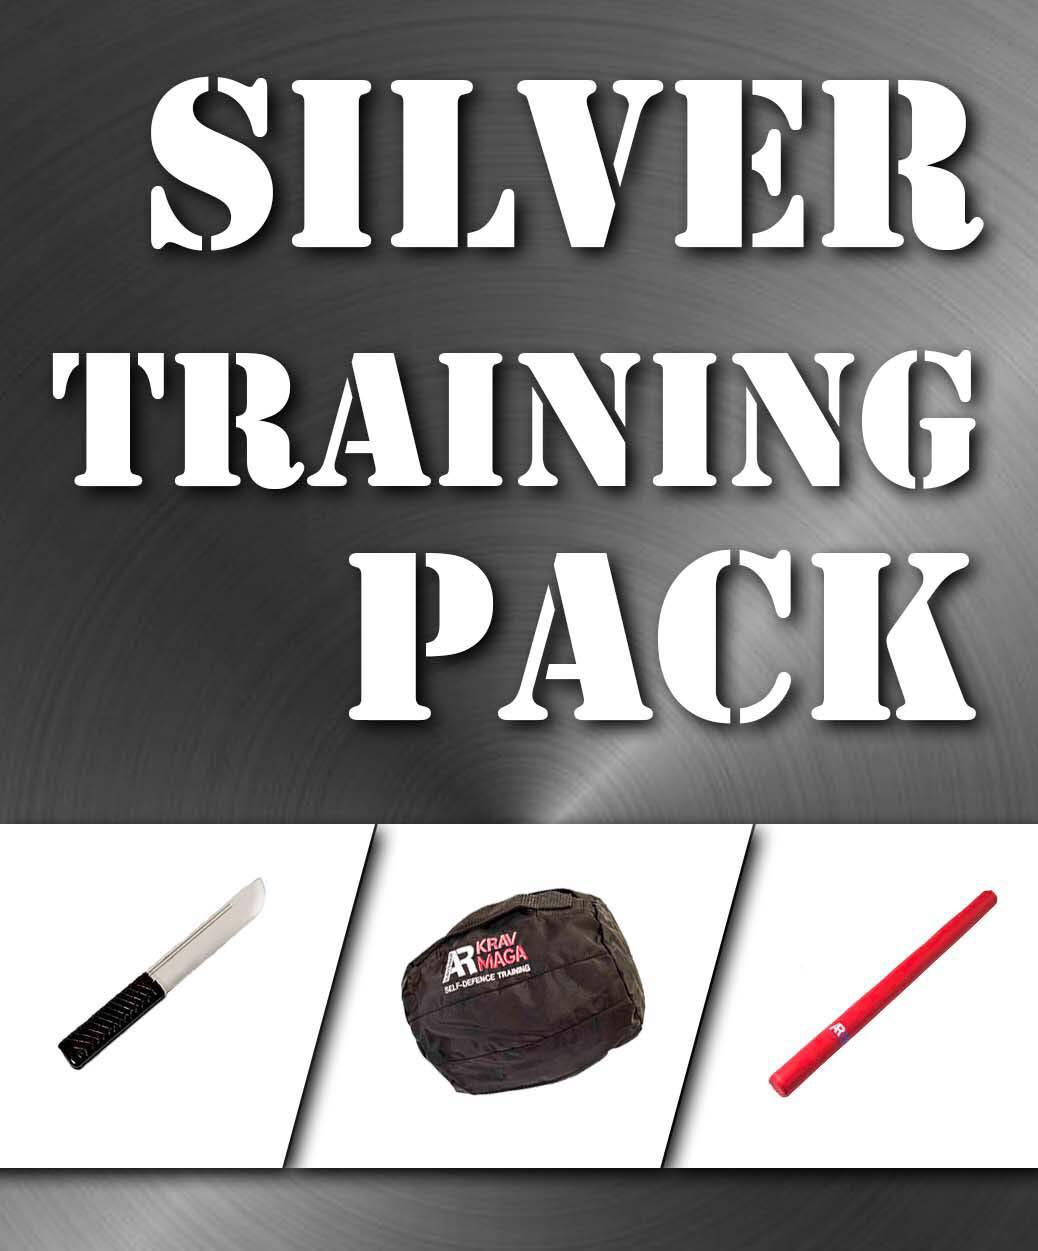 Silver Training Pack